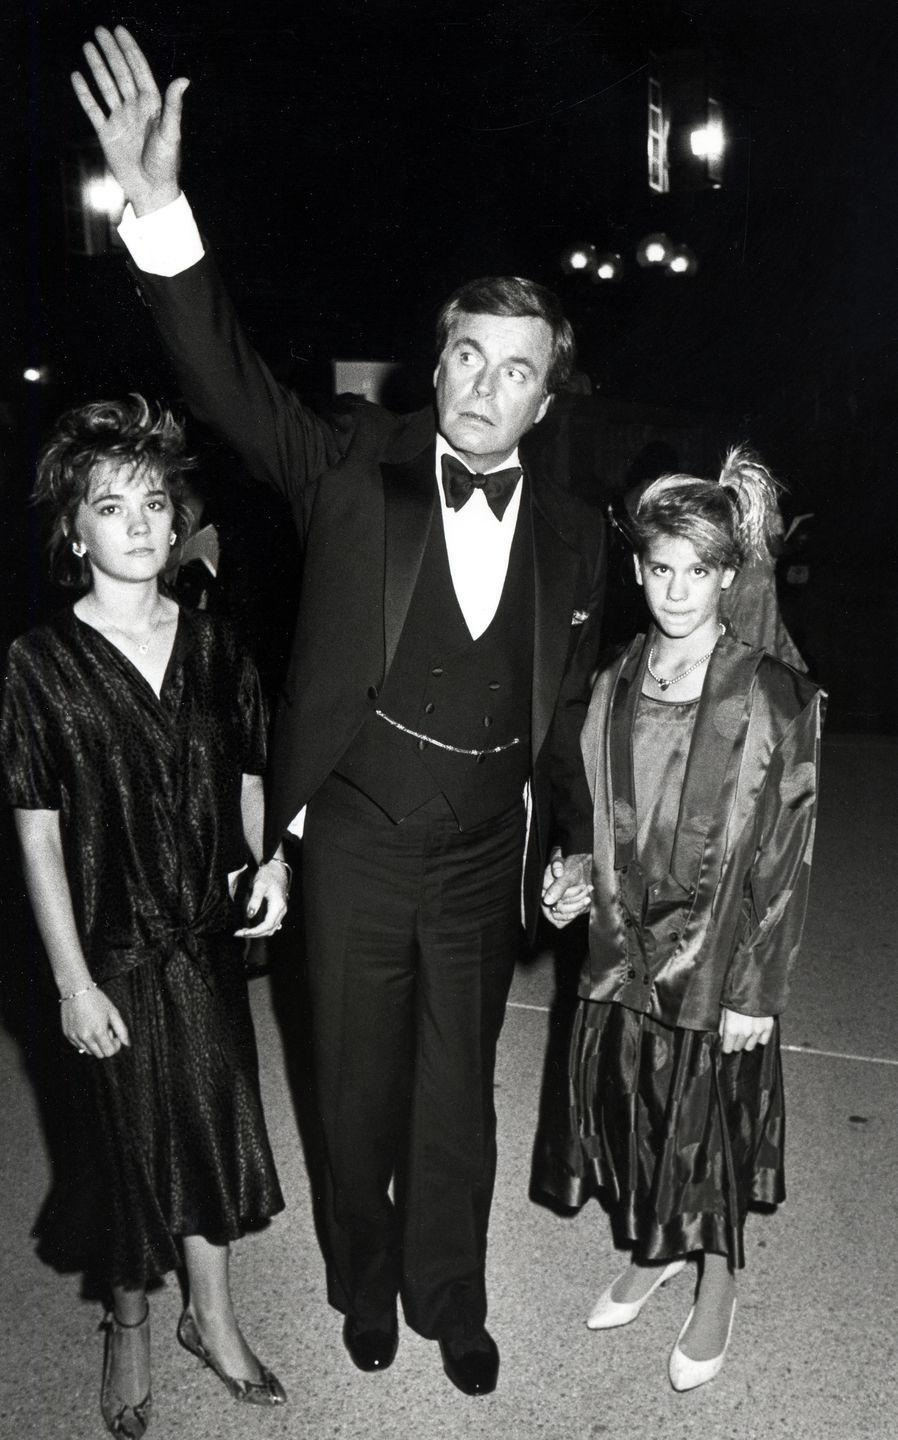 <p>After the tragic death of his wife, Natalie Wood, Robert Wagner raised their daughter Natasha Wagner (left). Here, the actor attends the 37th Emmy Awards with Natasha and her friend. </p>